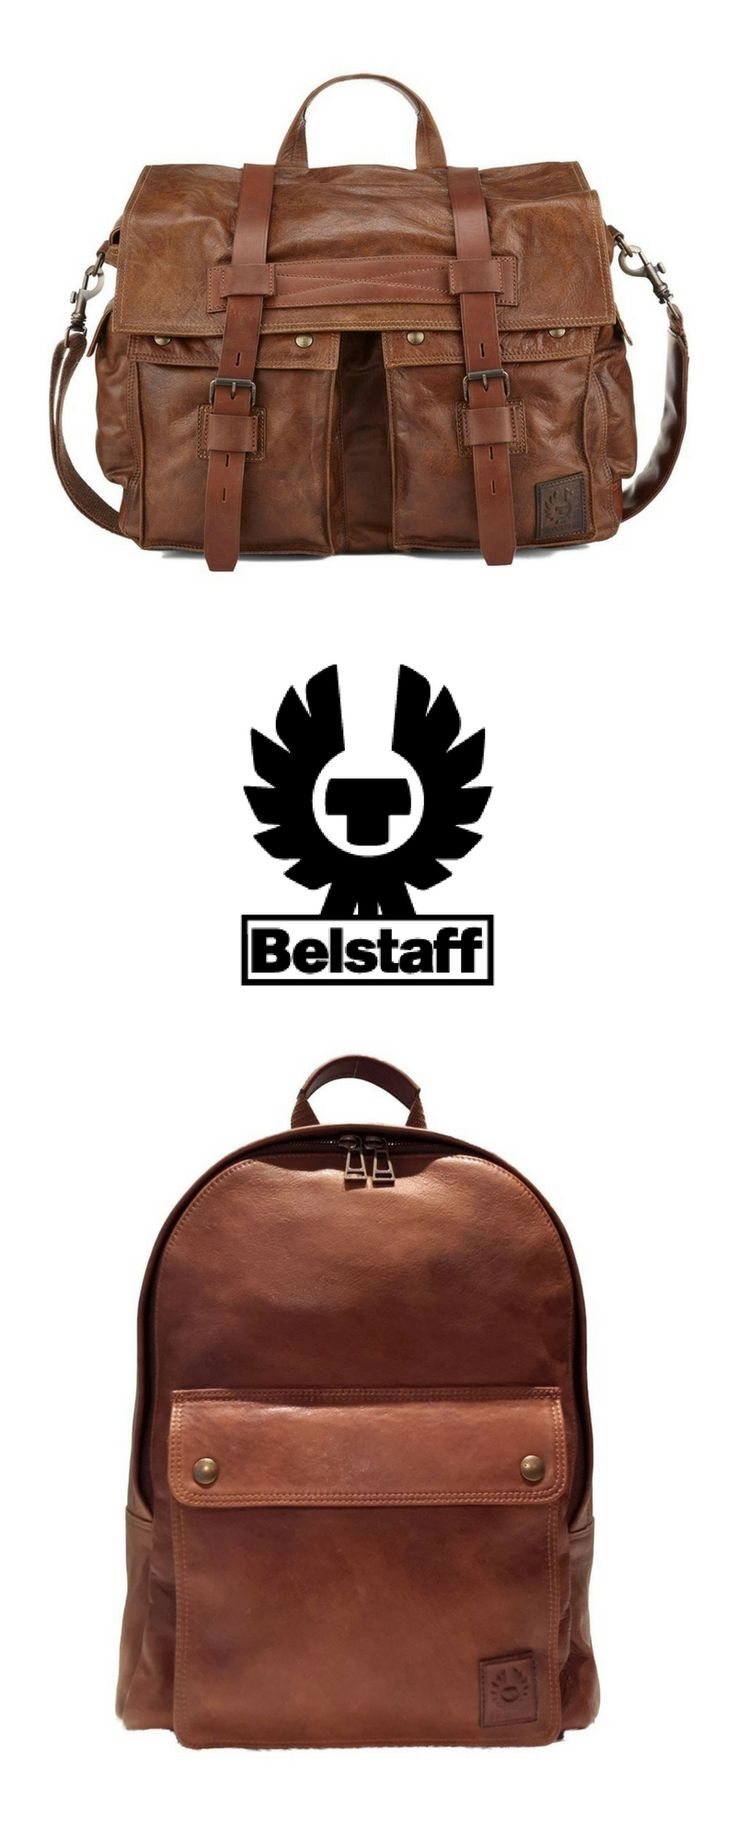 Belstaff is a global luxury lifestyle brand steeped in its unique British heritage and spirit of adventure. Shop Belstaff bags at Betty Hemmings!